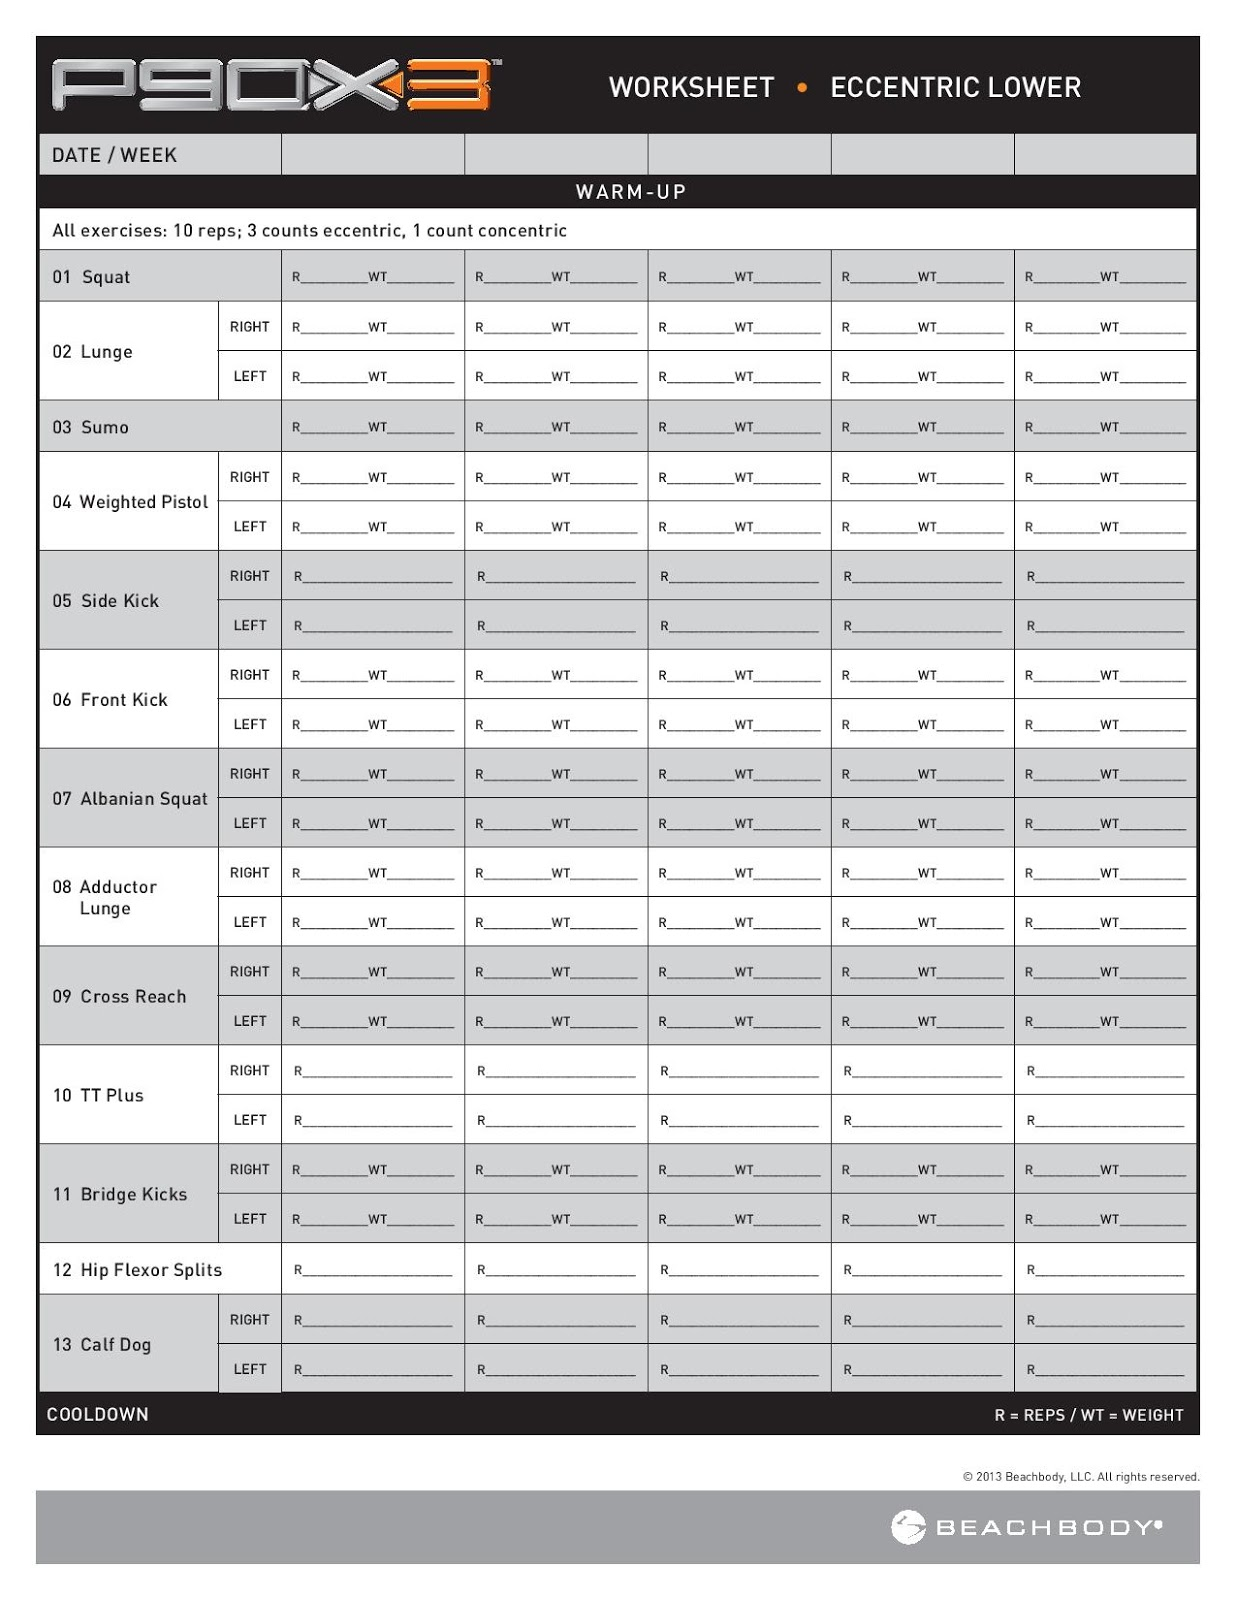 Worksheets Beachbody P90x3 Worksheets p90x3 worksheets workouts here below is the worksheet for eccentric upper